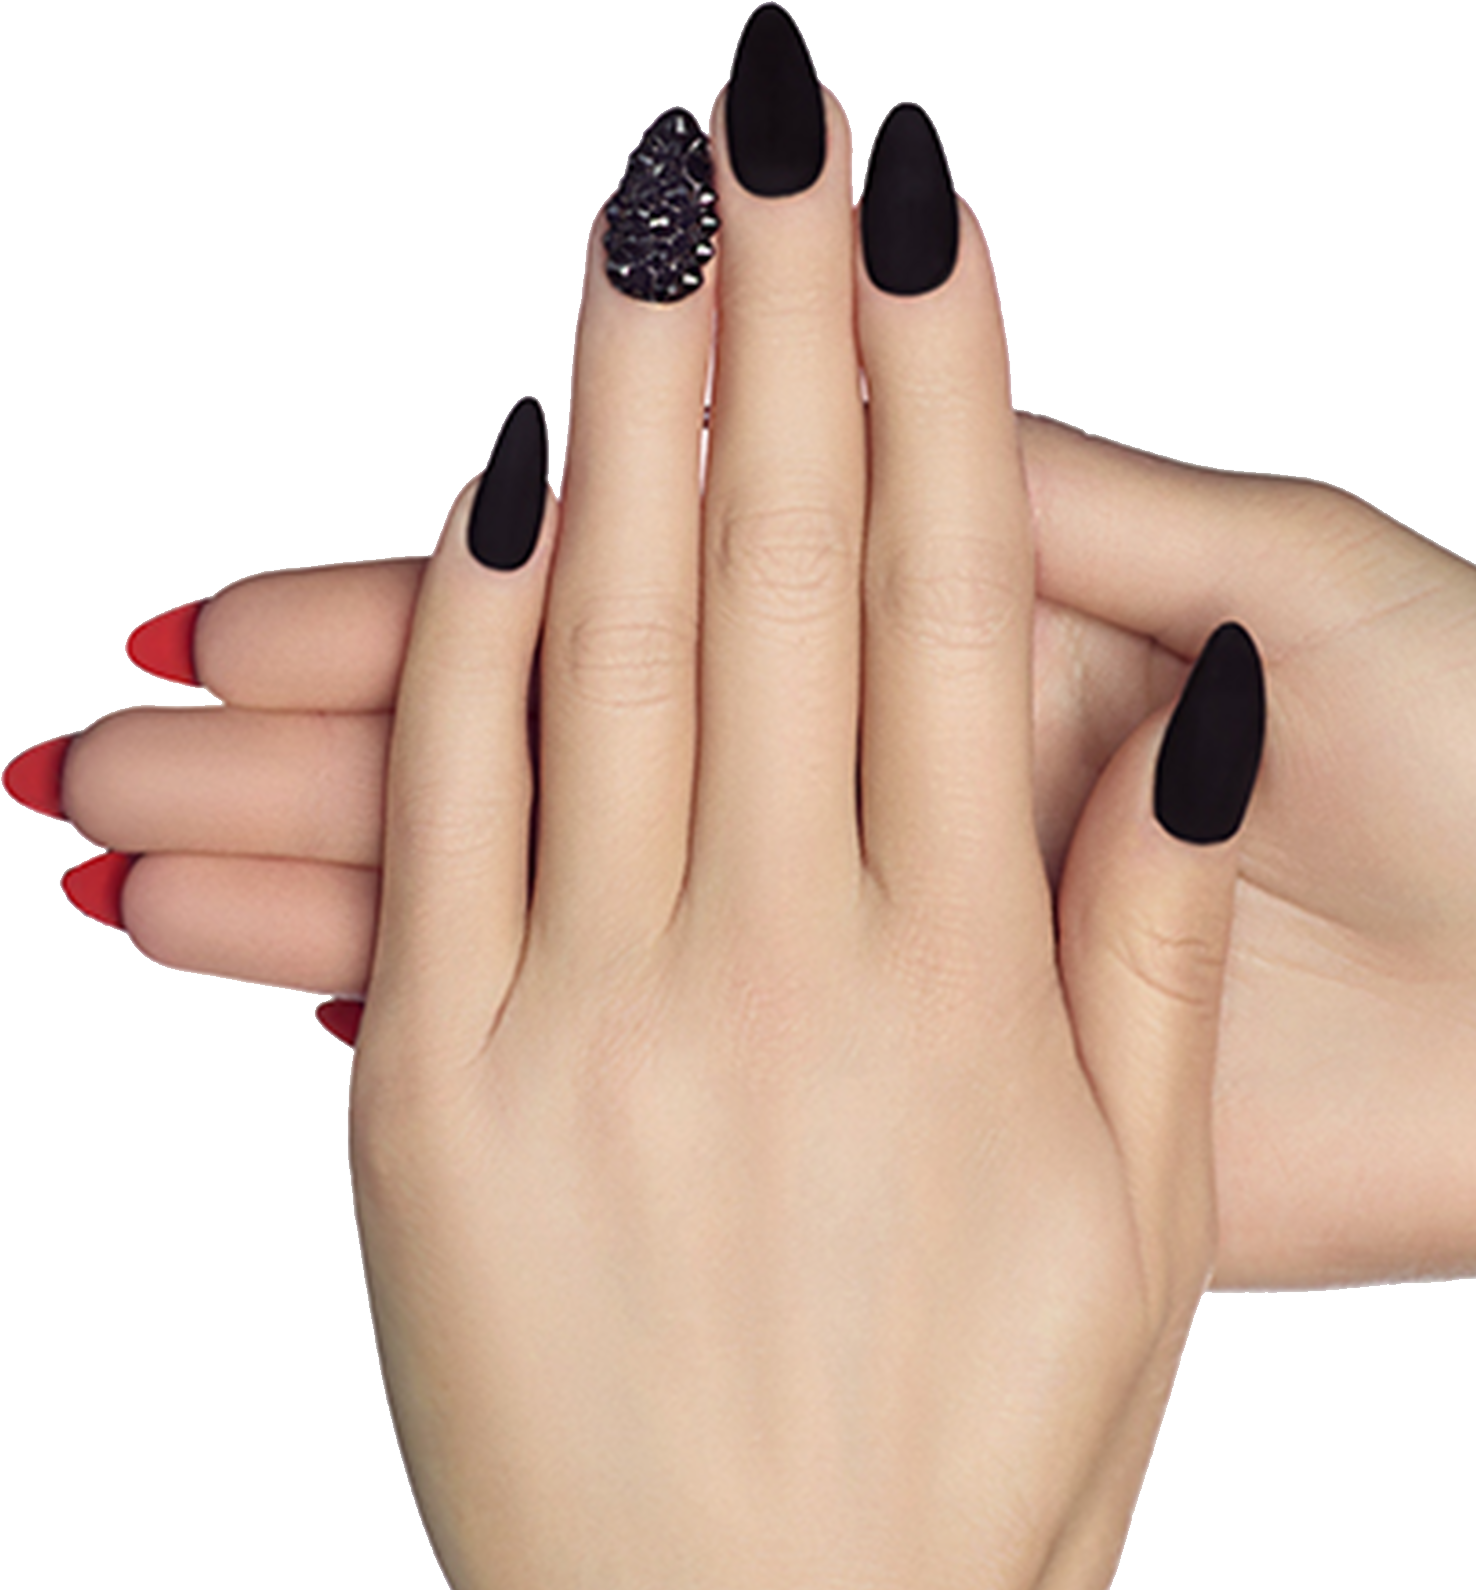 Download Nails Png Image For Free This png file is about finger ,feet ,hands ,city ,nails ,one ,custody ,sins ,friends ,tanning ,sable ,red ,help ,interest ,provision ,legs ,canonphotos ,workforce ,travel ,day ,beer ,party ,photoshoot ,hand. download nails png image for free